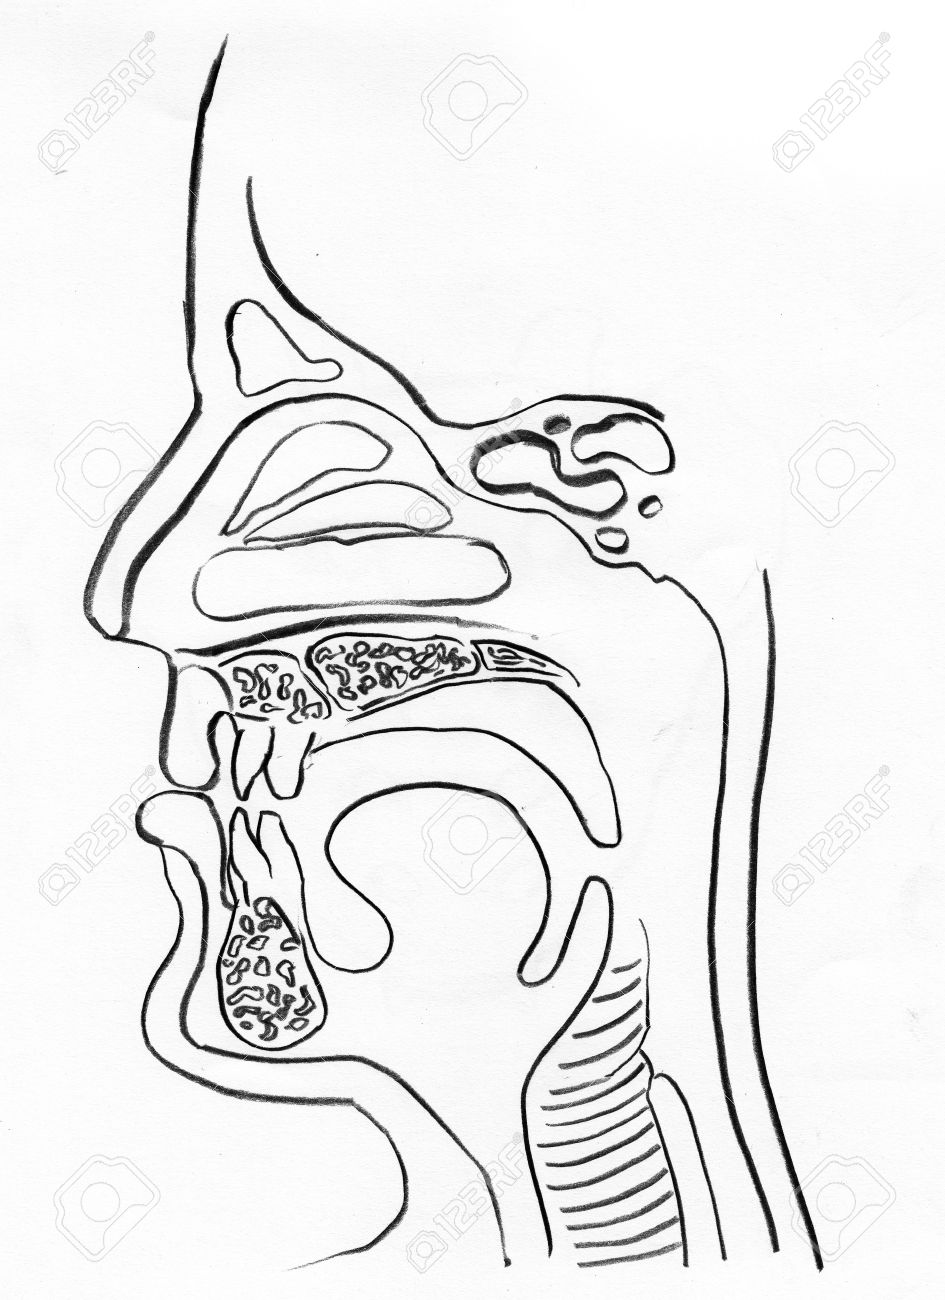 945x1300 Upper Respiratory Tract Outline Drawing In White Background Stock